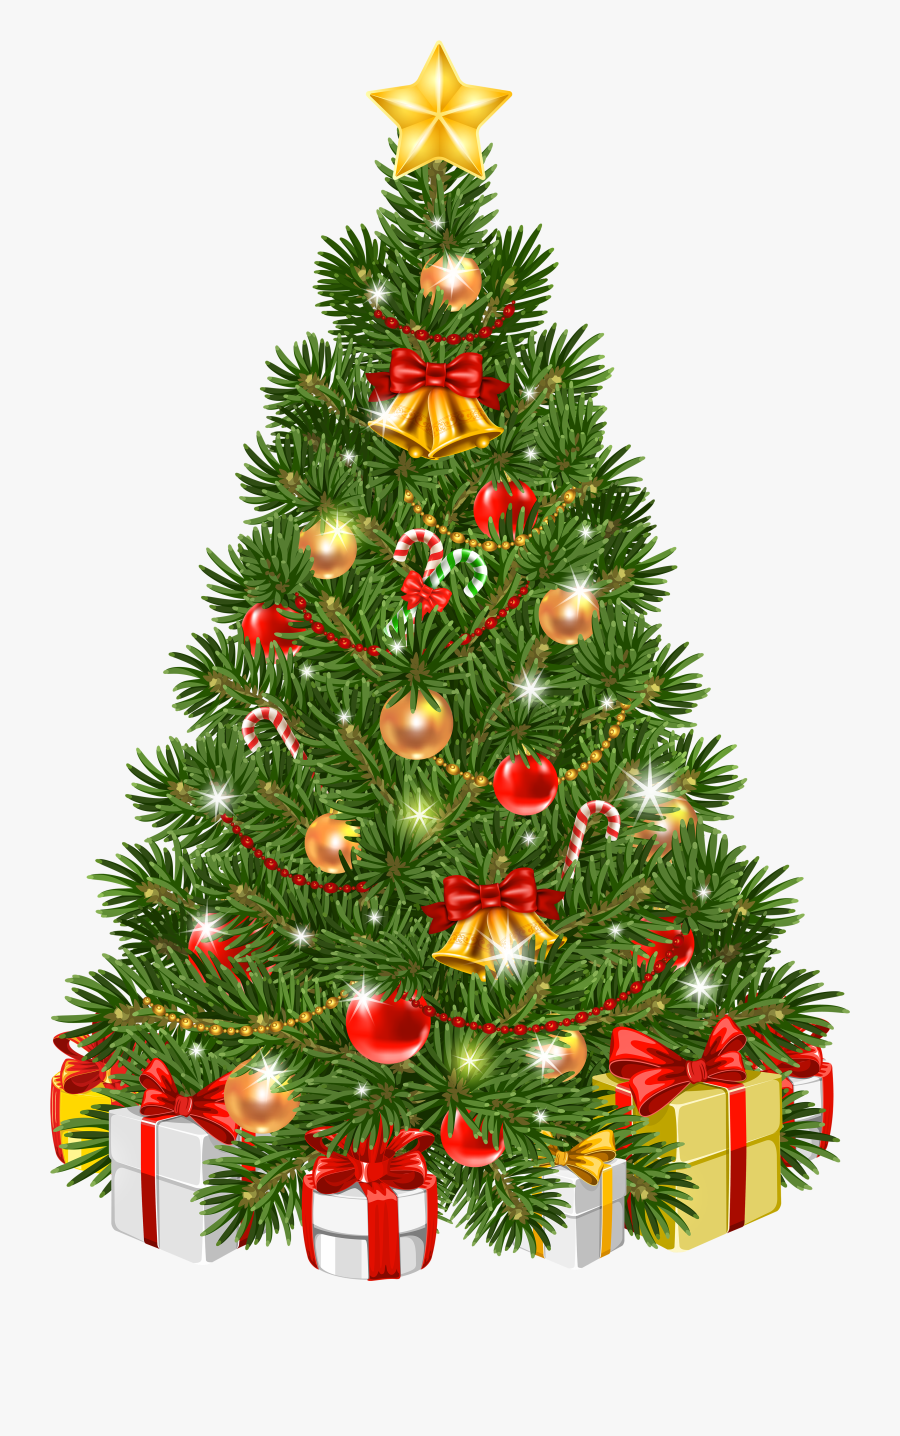 Tree Ornament Transparent Decorated Christmas Day Clipart.